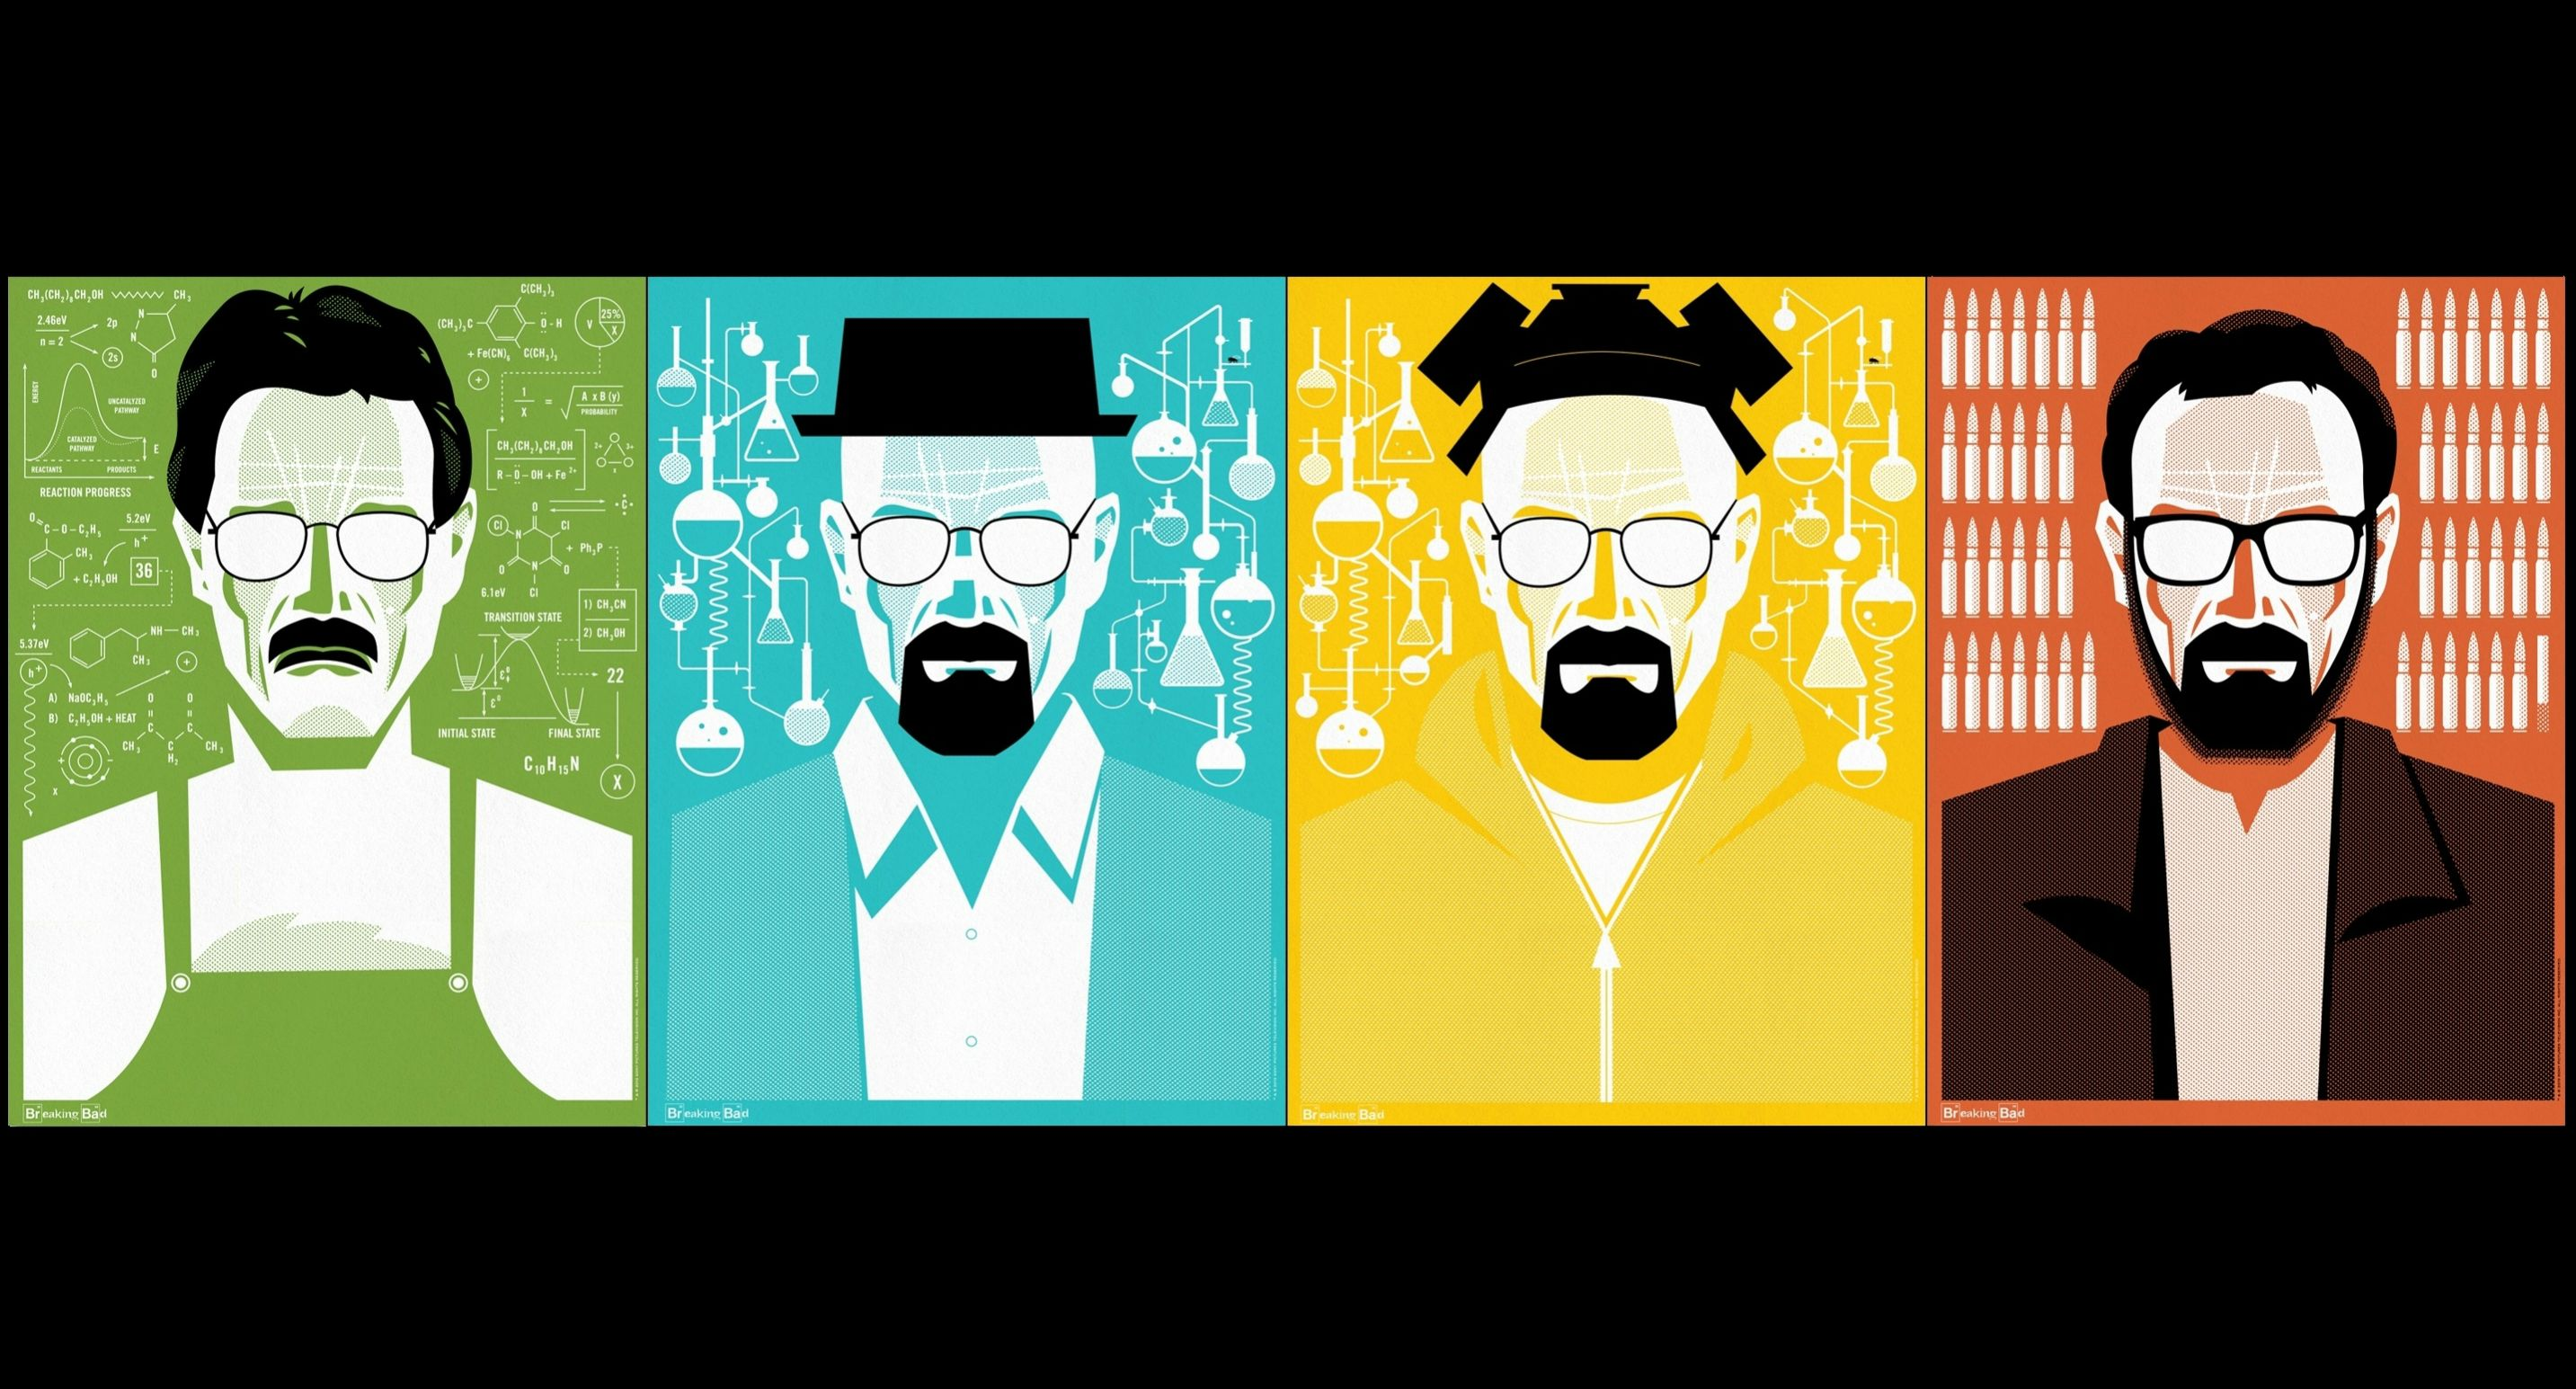 Breaking Bad Set Year Brba Hd Wallpaper Background Image 2866x1545 Id